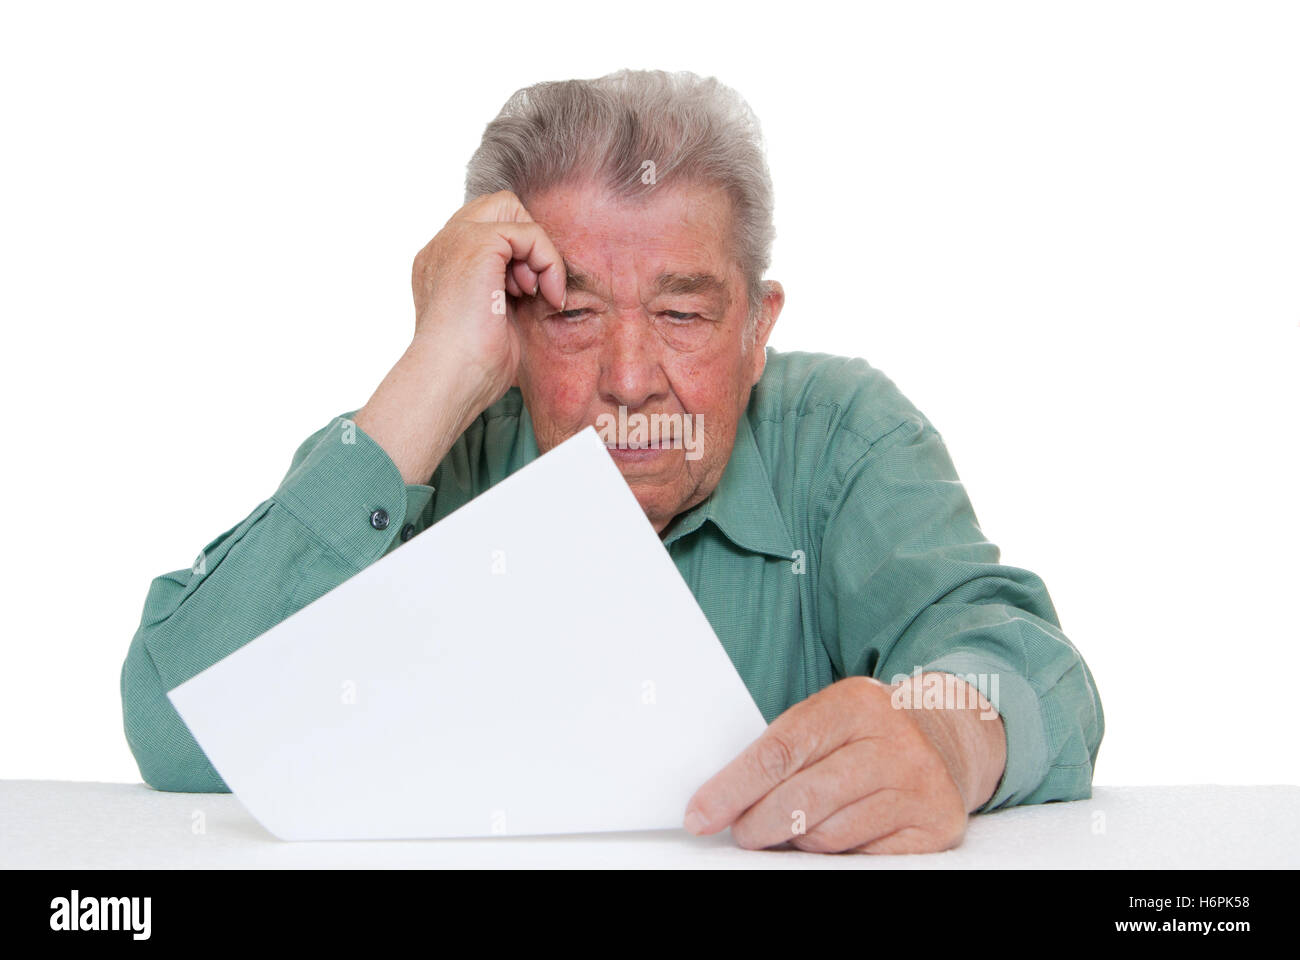 fear concern worried worry anxiety anxious solicitous saving responsible unemployed pension annuity man senior senior - Stock Image